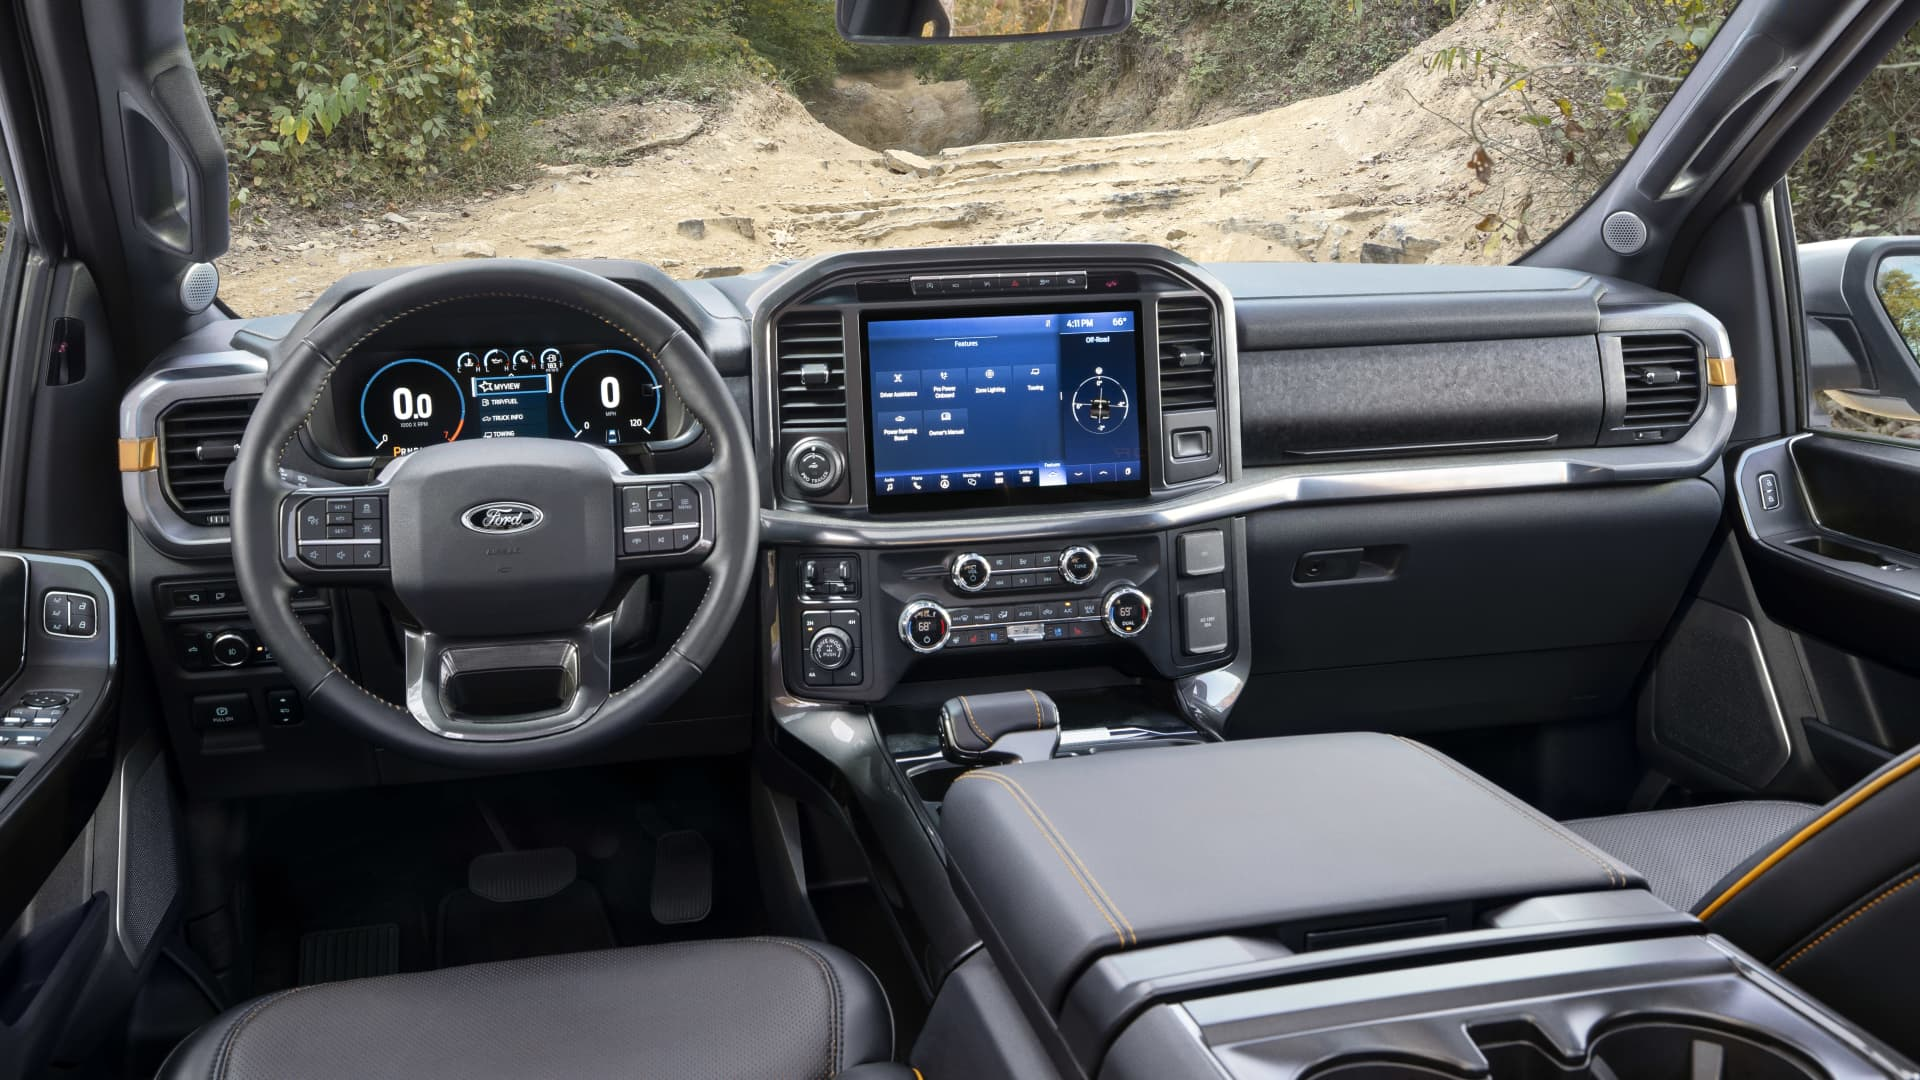 2021 Ford F-150 Tremor interior